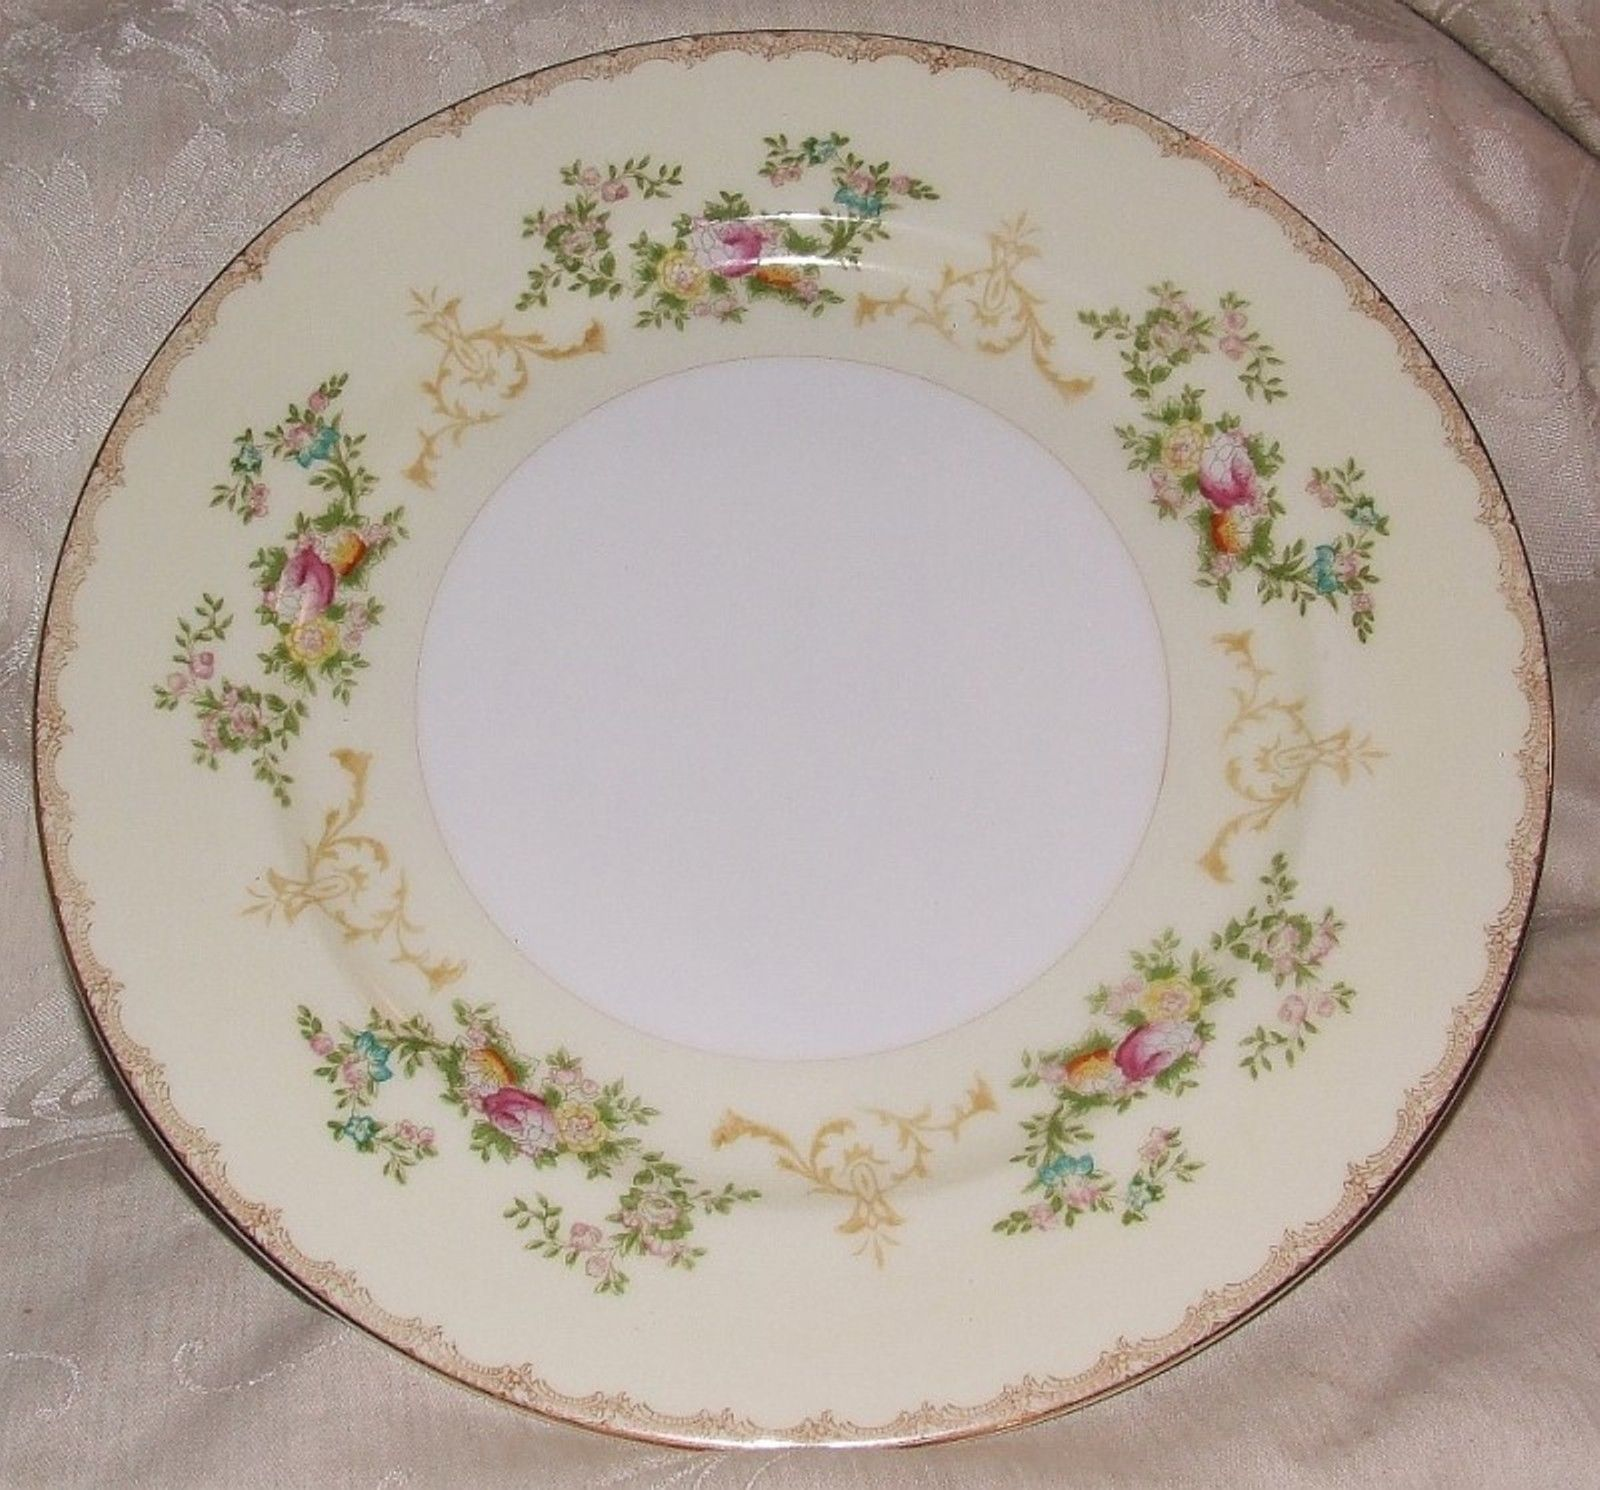 Primary image for MEITO FLORA Dinner Plate Elegant Hand Painted Porcelain Japan 1950s 3 Available